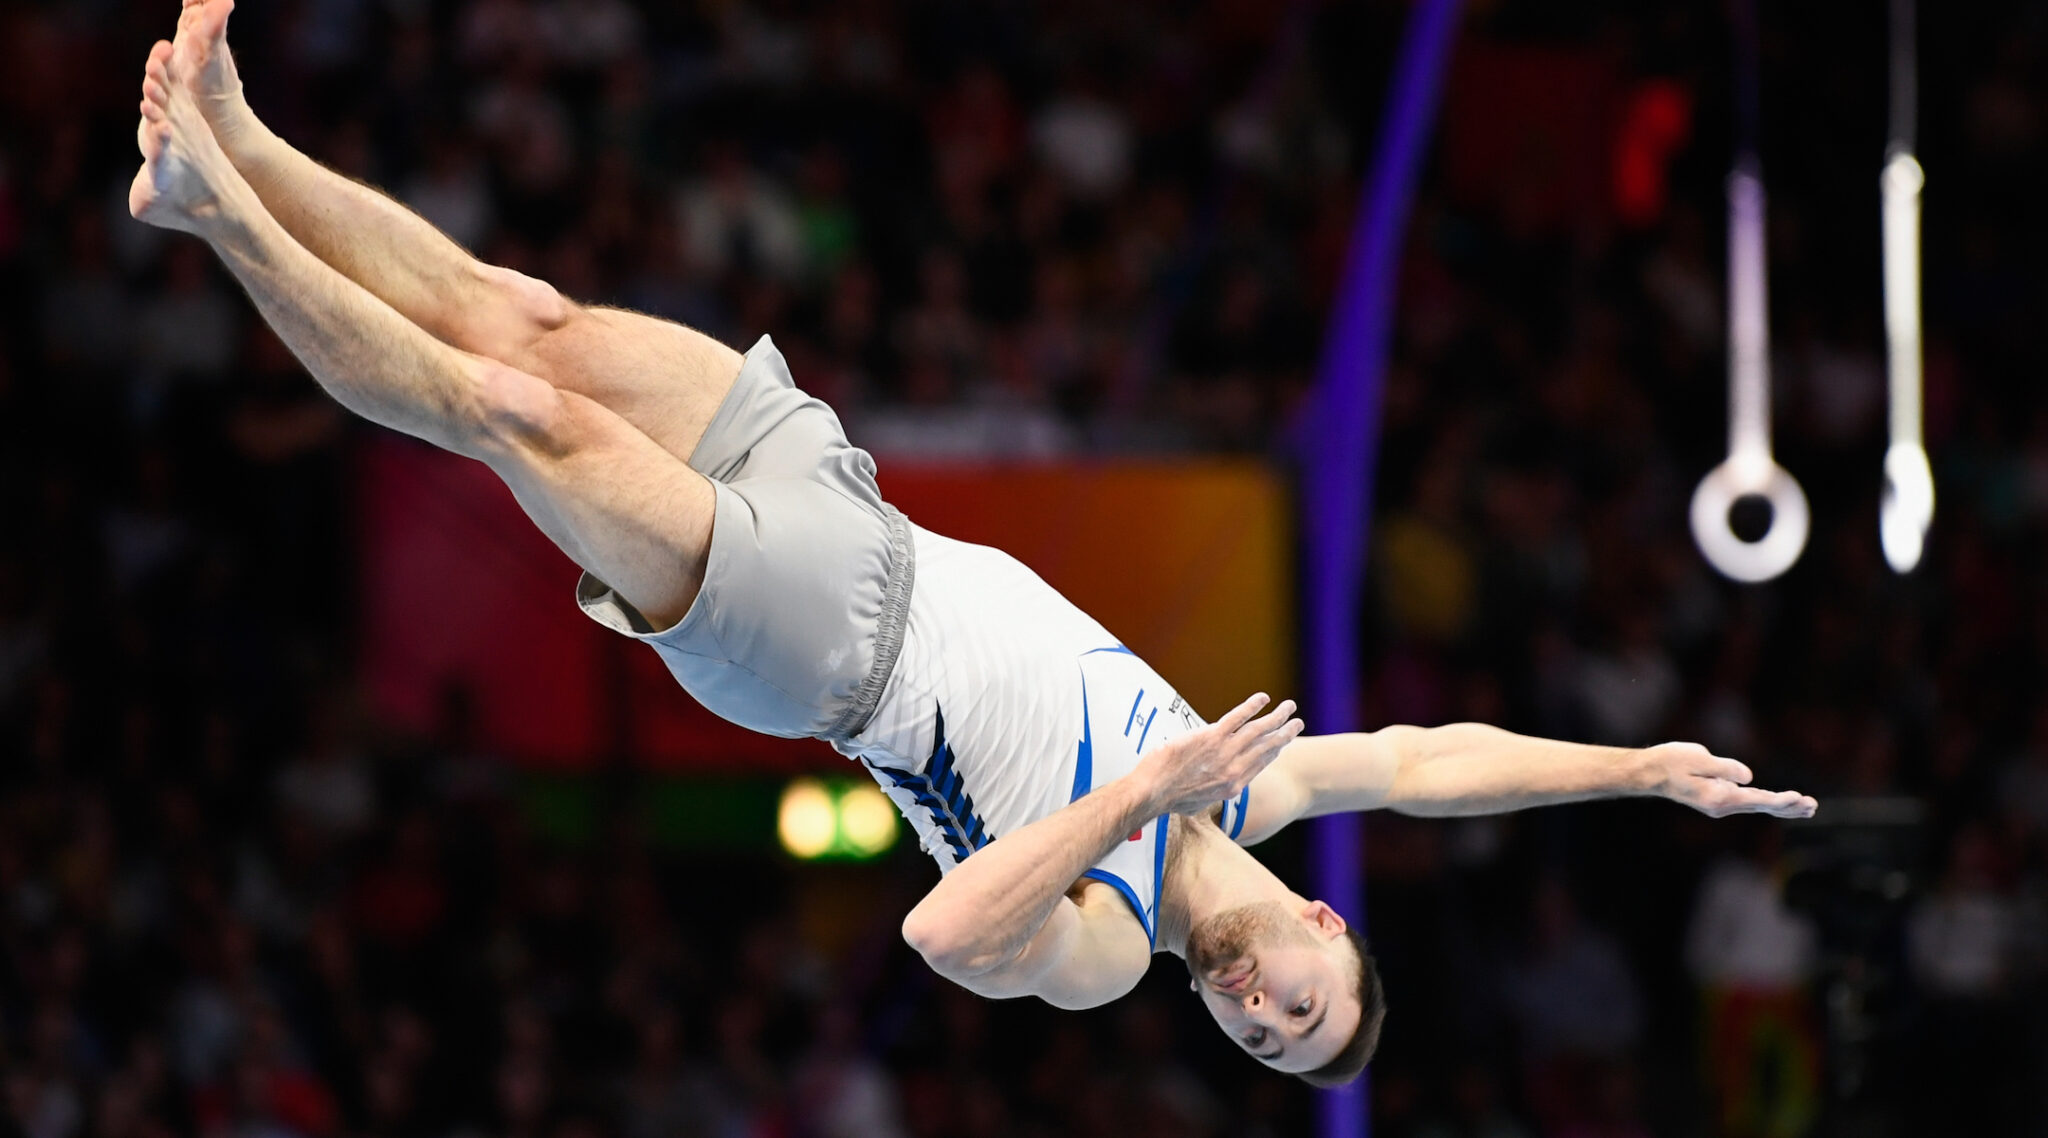 Artem Dolgopyat performs at the gymnastics World Championships in Stuttgart, Germany, Oct. 12, 2019. The Associated Press picked Dolgopyat to win a gold medal in Tokyo. (Photo/JTA-Tom Weller-picture alliance via Getty Images)